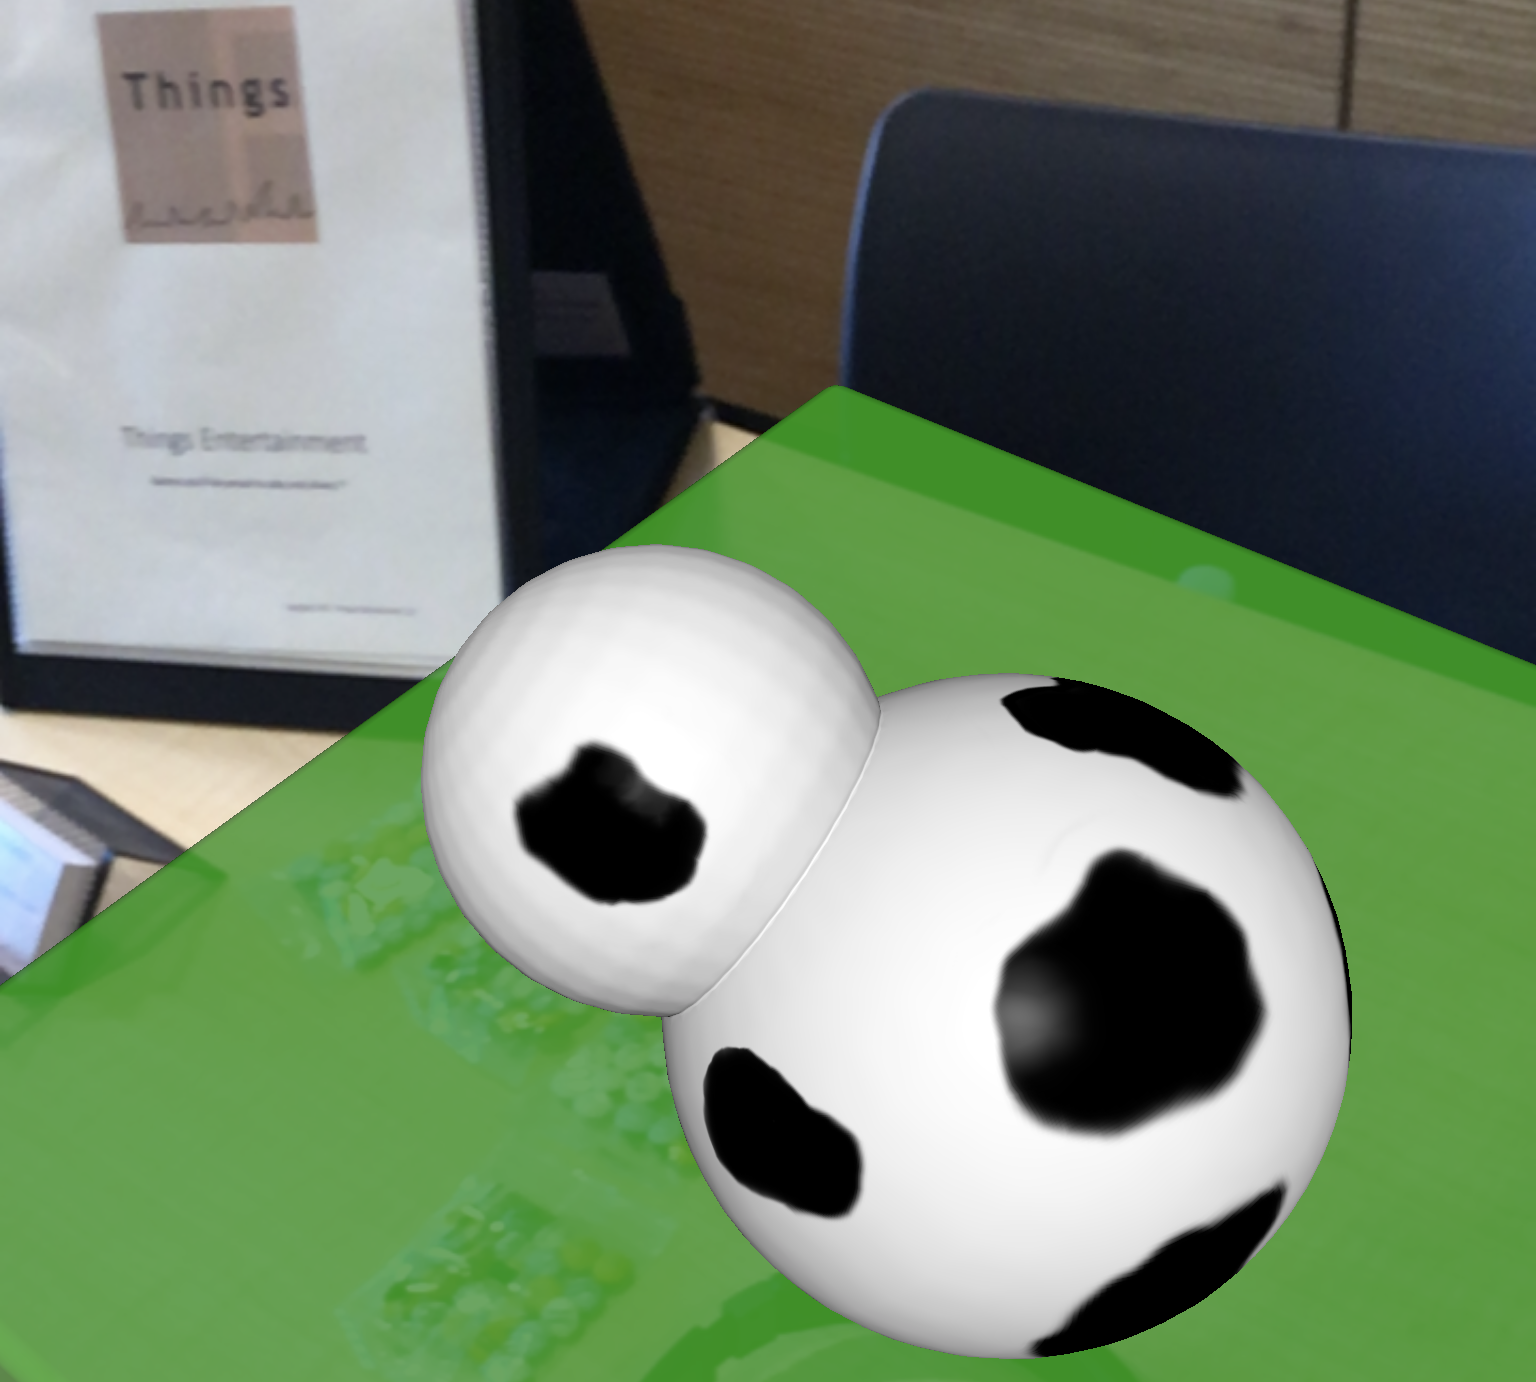 View of a table through an augmented reality application. The table has been augmented with a green field and a demo cow. The green field is semi-transparent, so you can still see other items on the table through the field. The demo cow, though, is opaque.